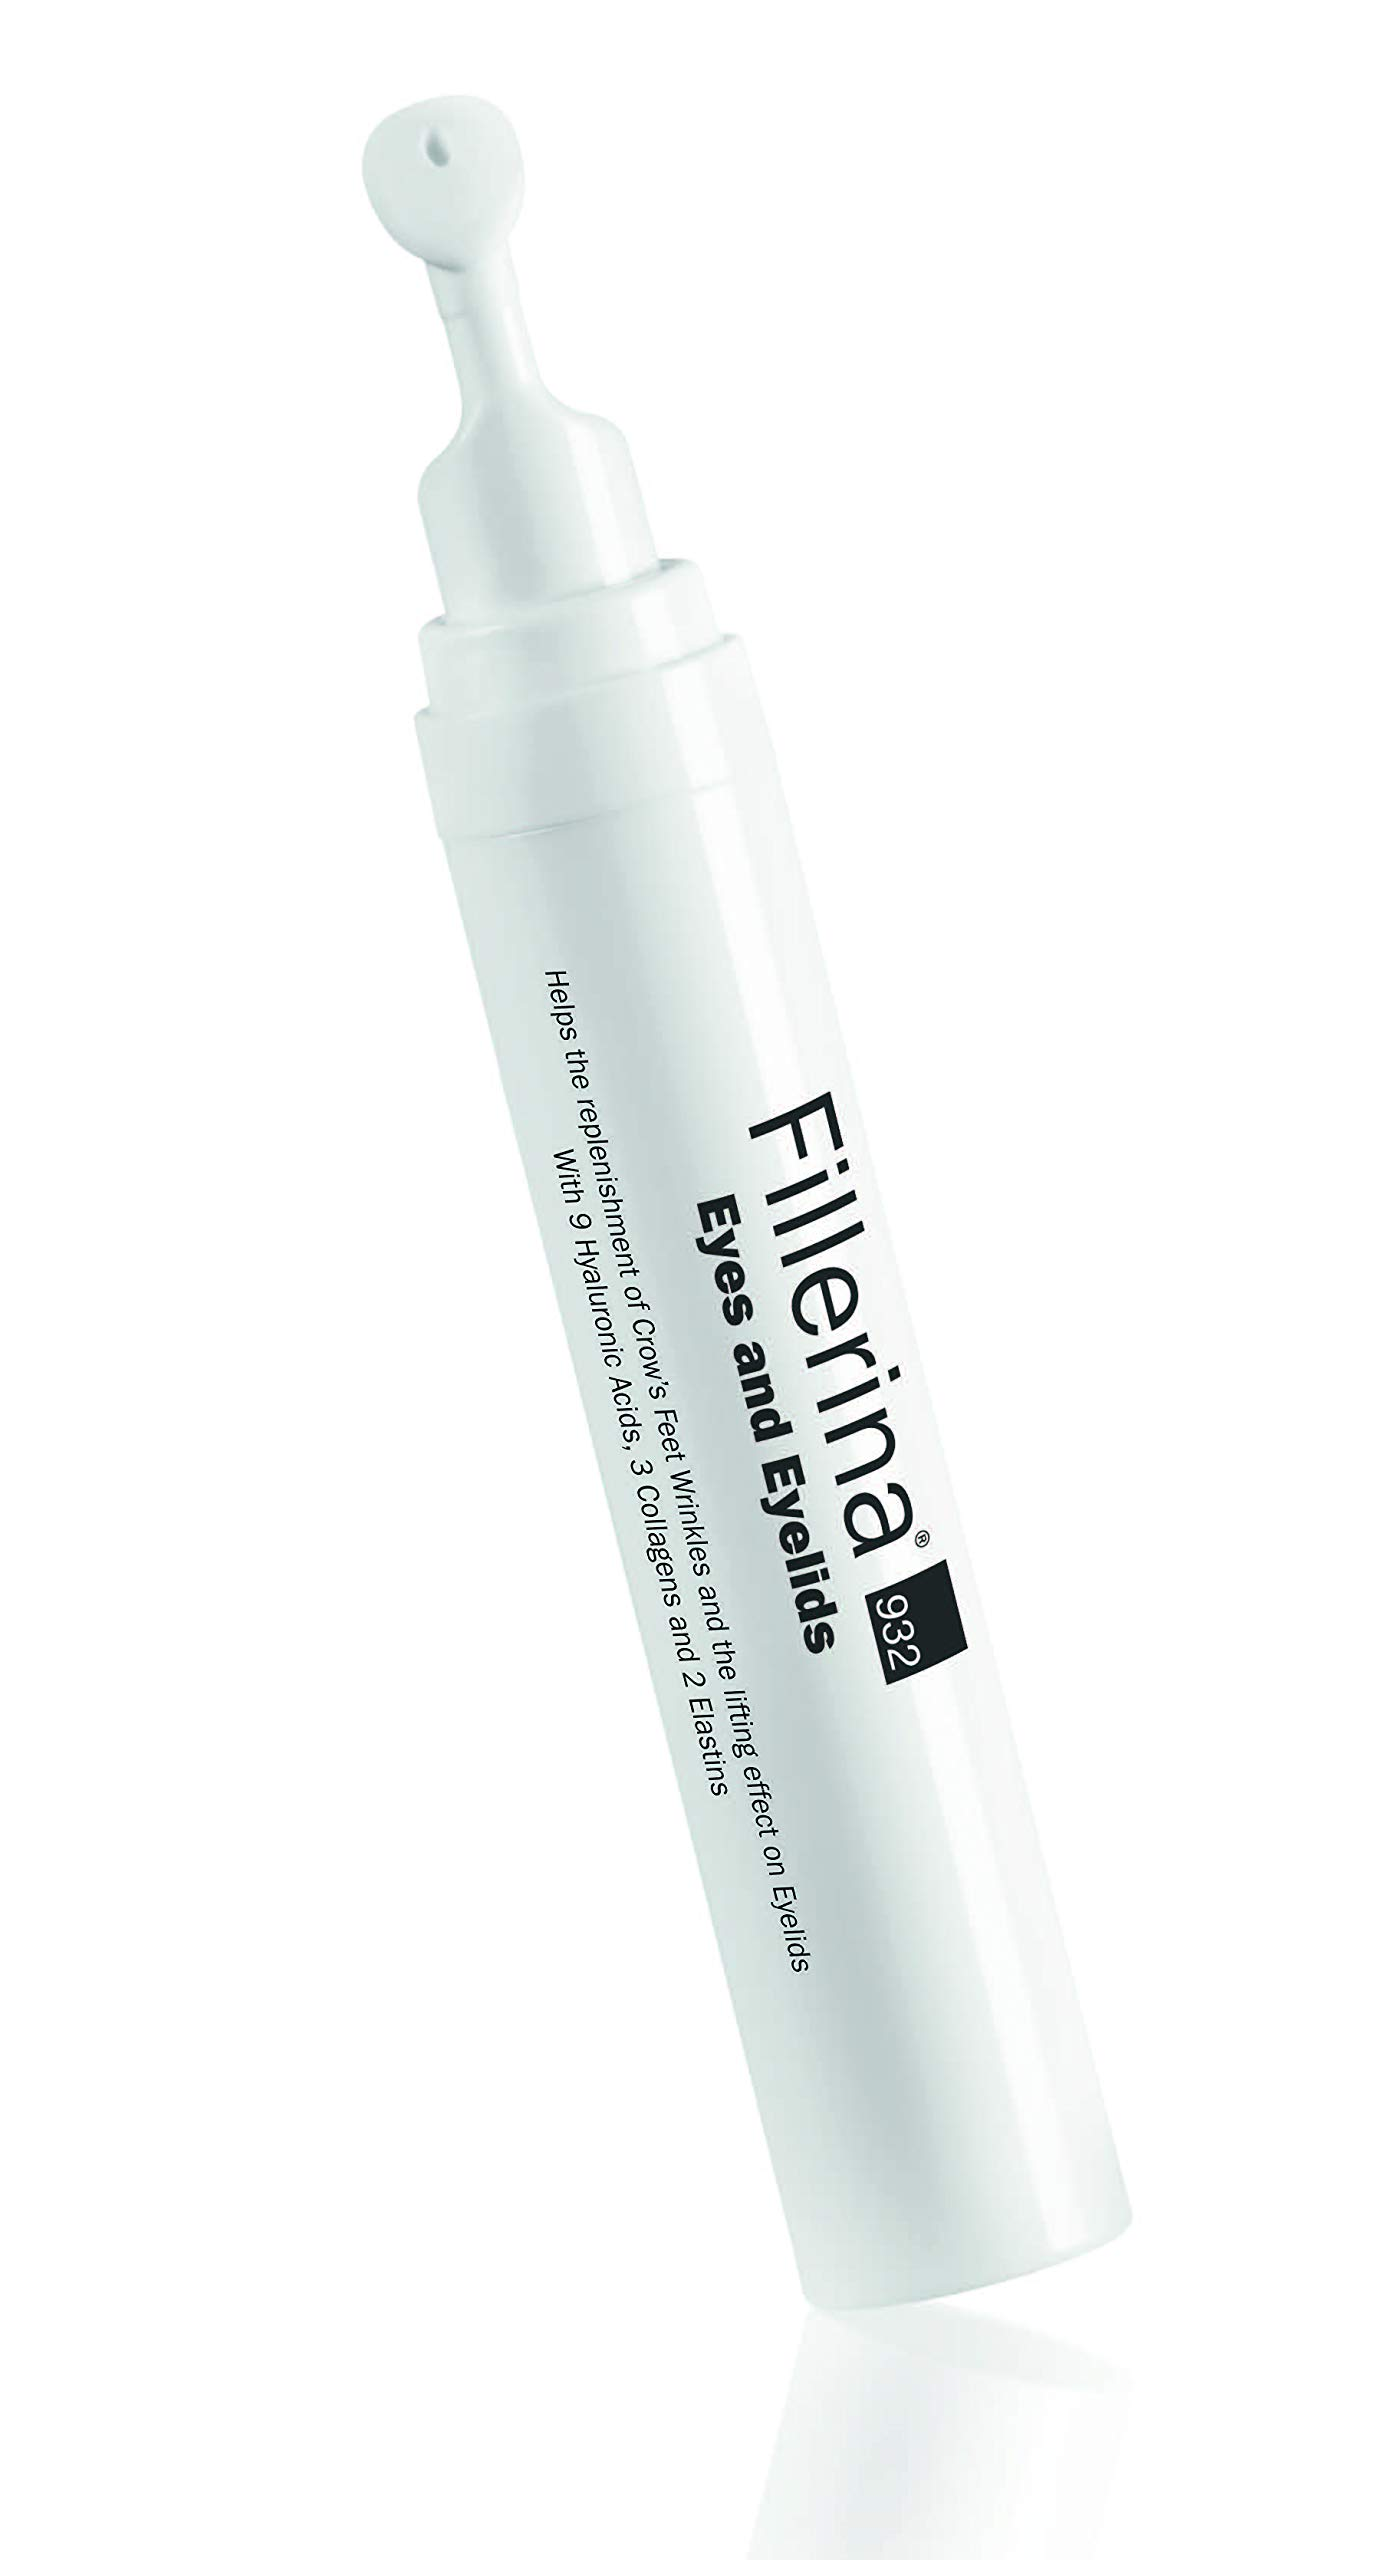 Fillerina 932 Eyes and Eyelids - Eye Treatment That Fills In Under Eye Hollowness, Smooths Crows Feet, and Tightens Eyelids – Hyaluronic Acid and Collagen Eye Treatment (Grade 5)